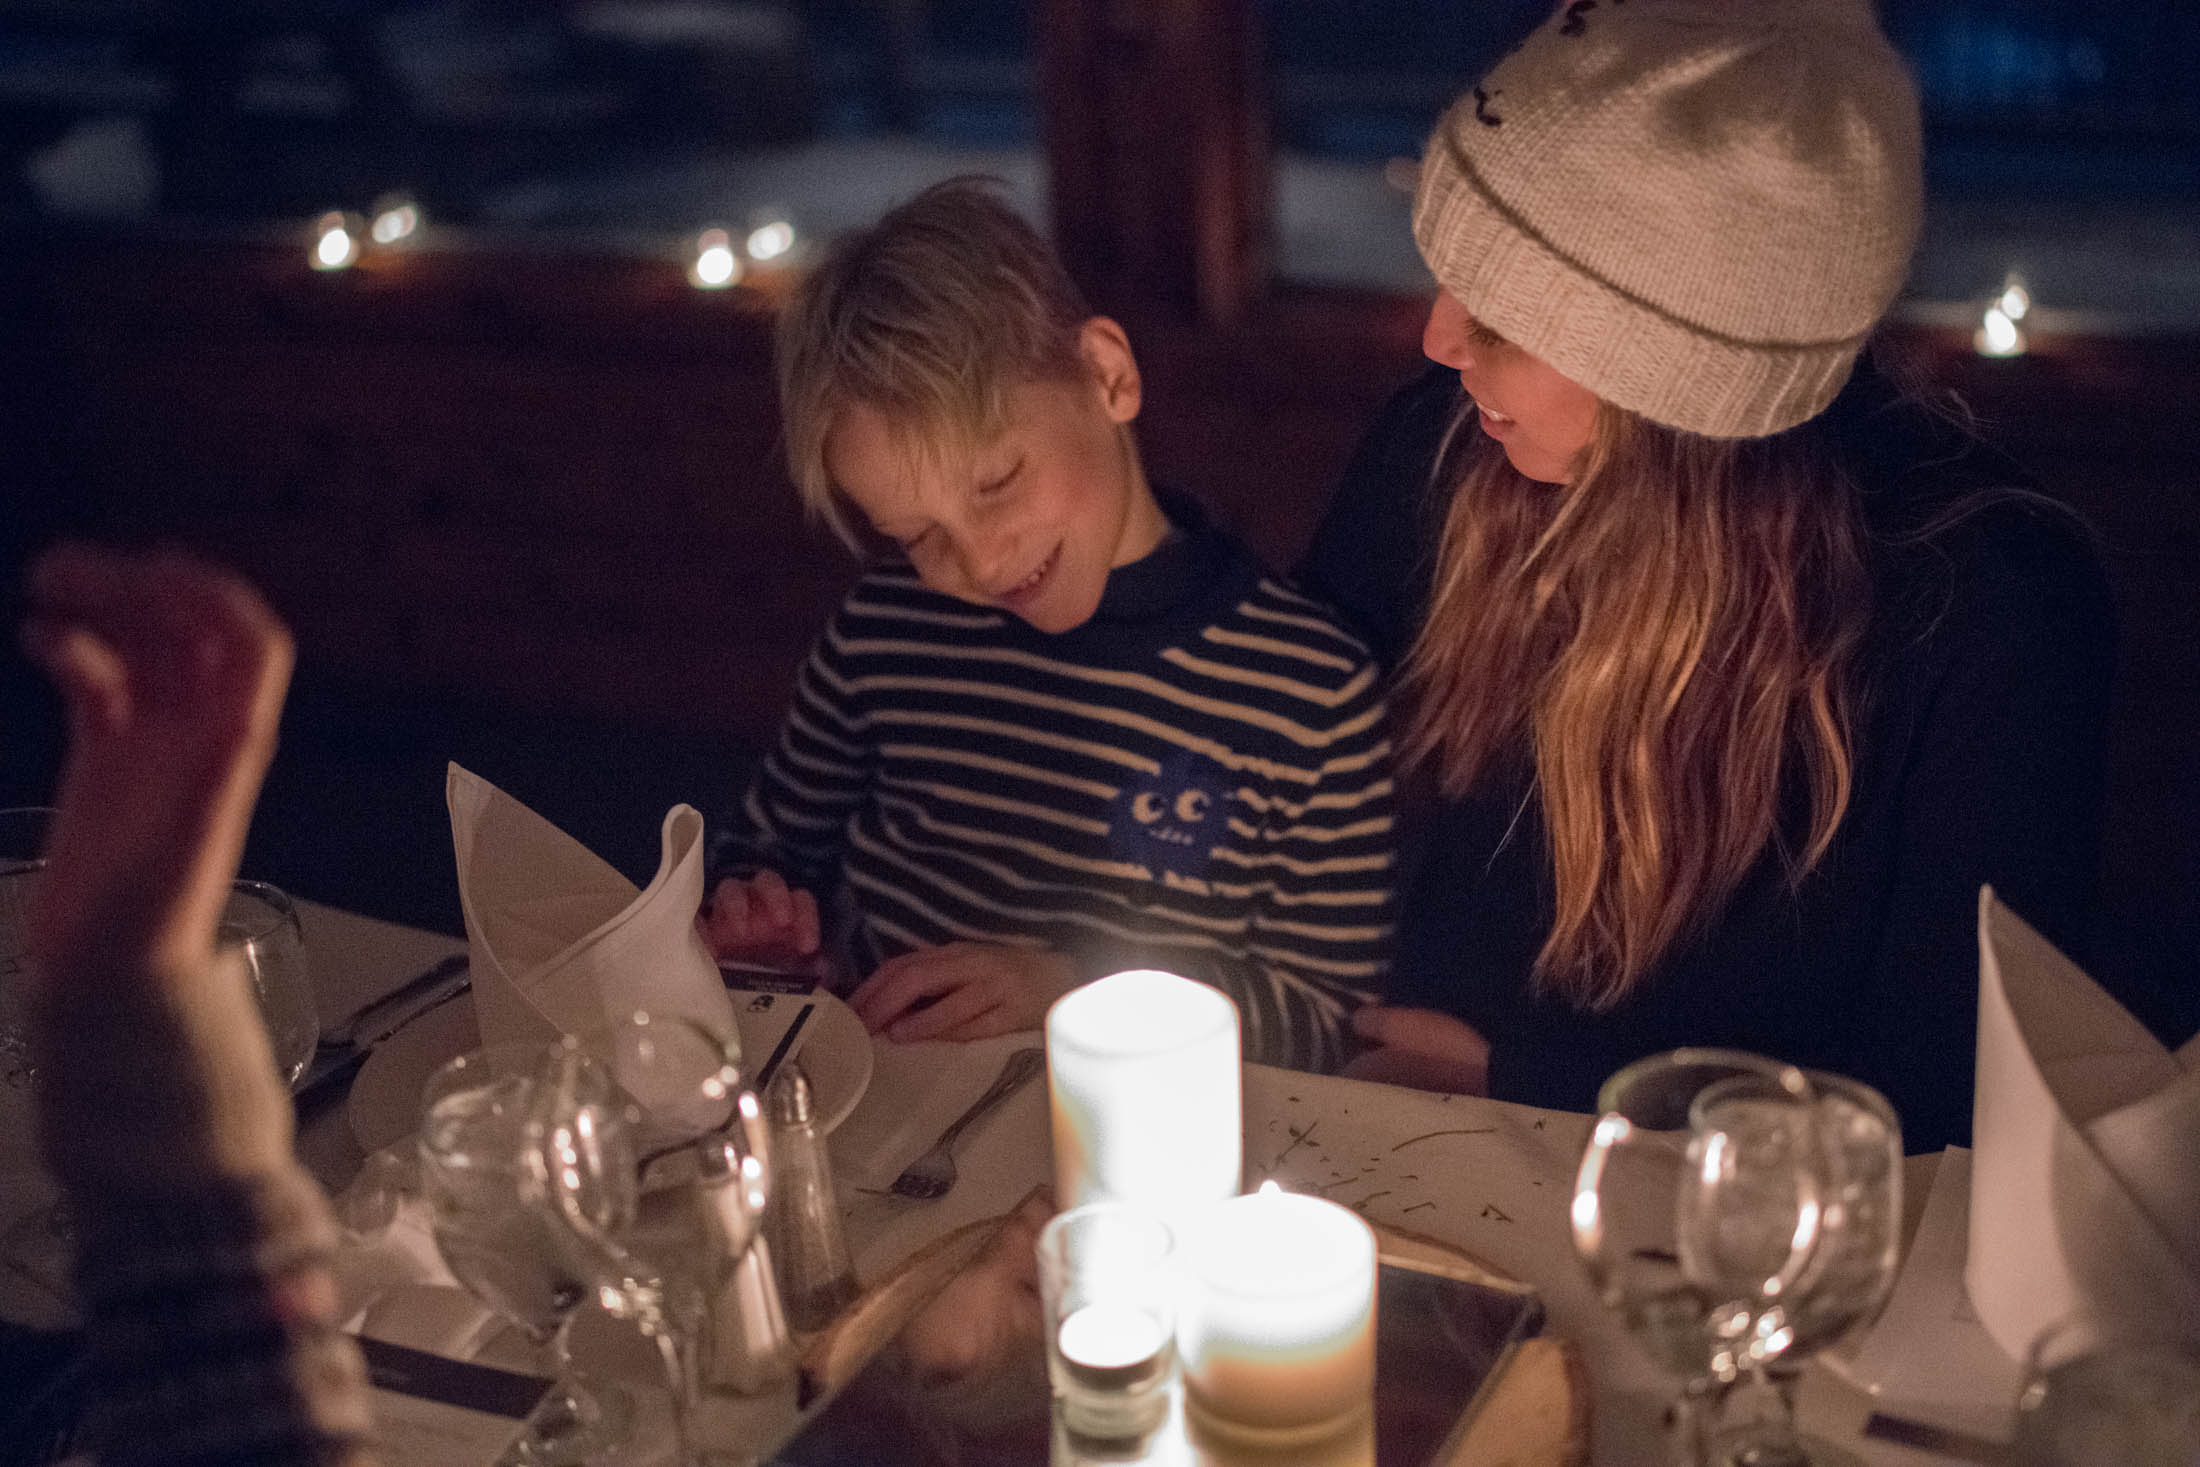 We had a super-fun vacation at Boyne Highlands resort in Michigan. Skiing, S'mores-making, swimming & dining — perfect for family-friendly bonding. Go!